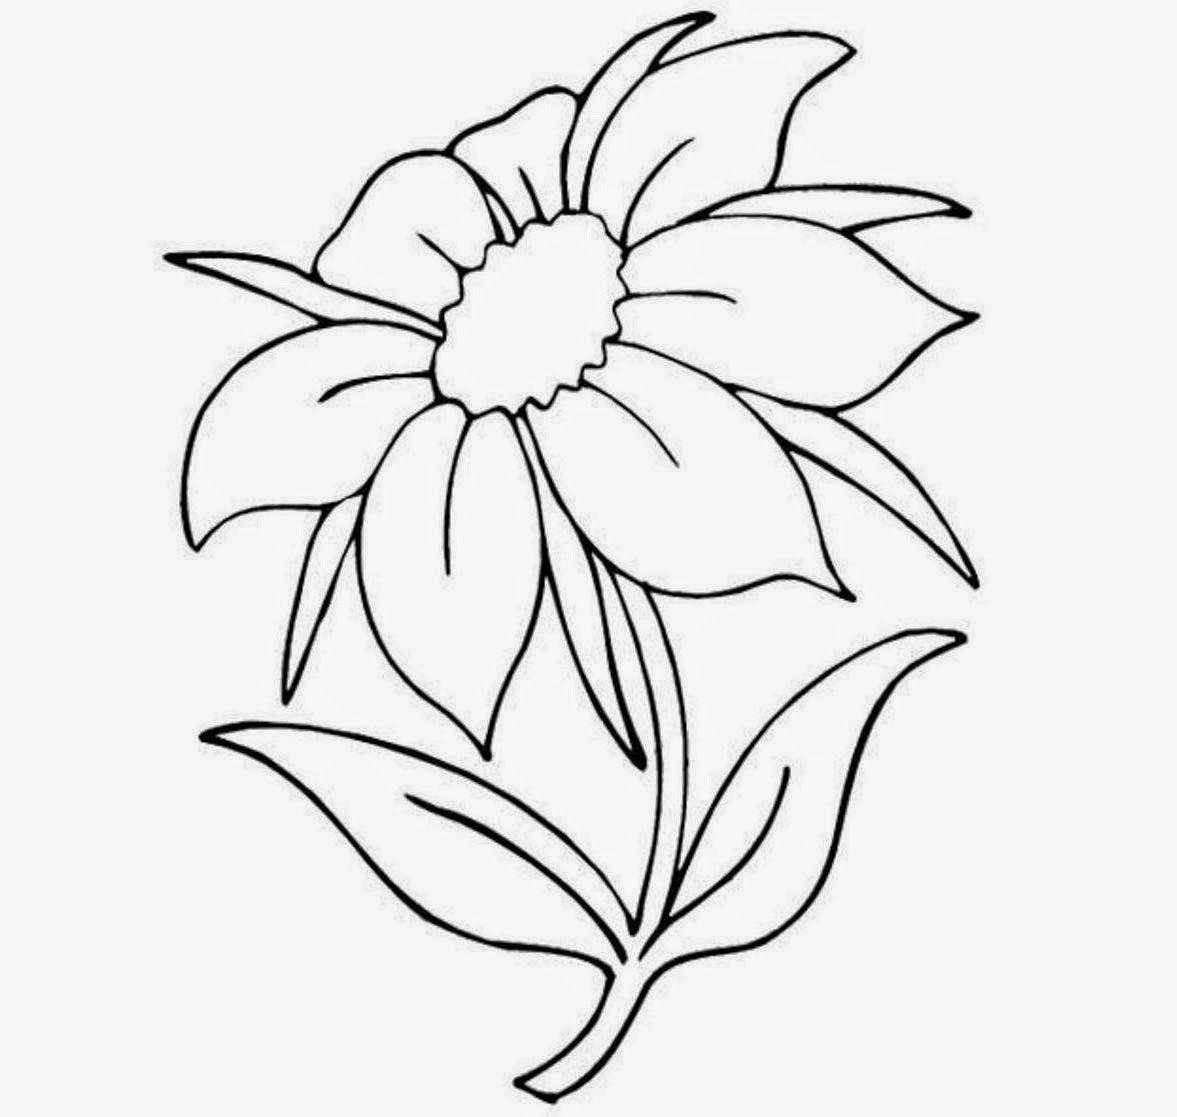 Pictures Of Flowers To Draw Beautiful Flowers Easy Flower Drawings Flower Drawing Flower Sketches